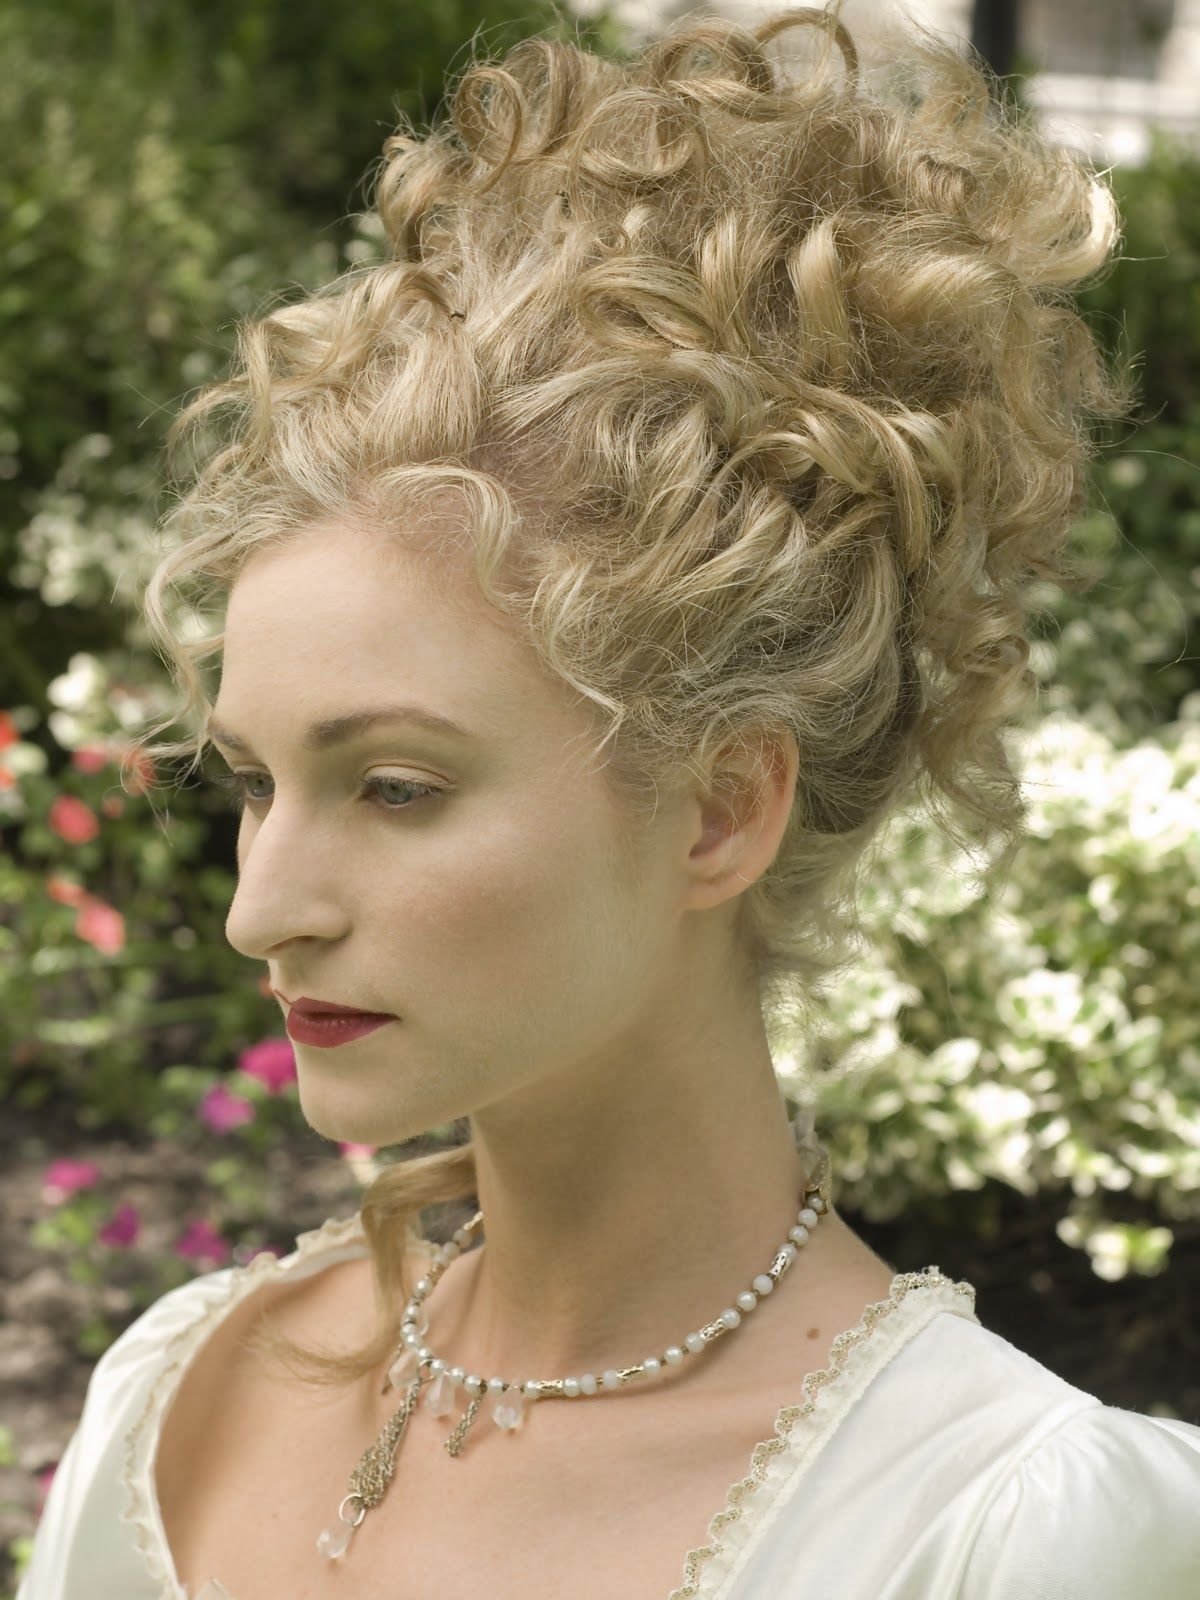 marie antoinette hairstyles - google search | costume ideas